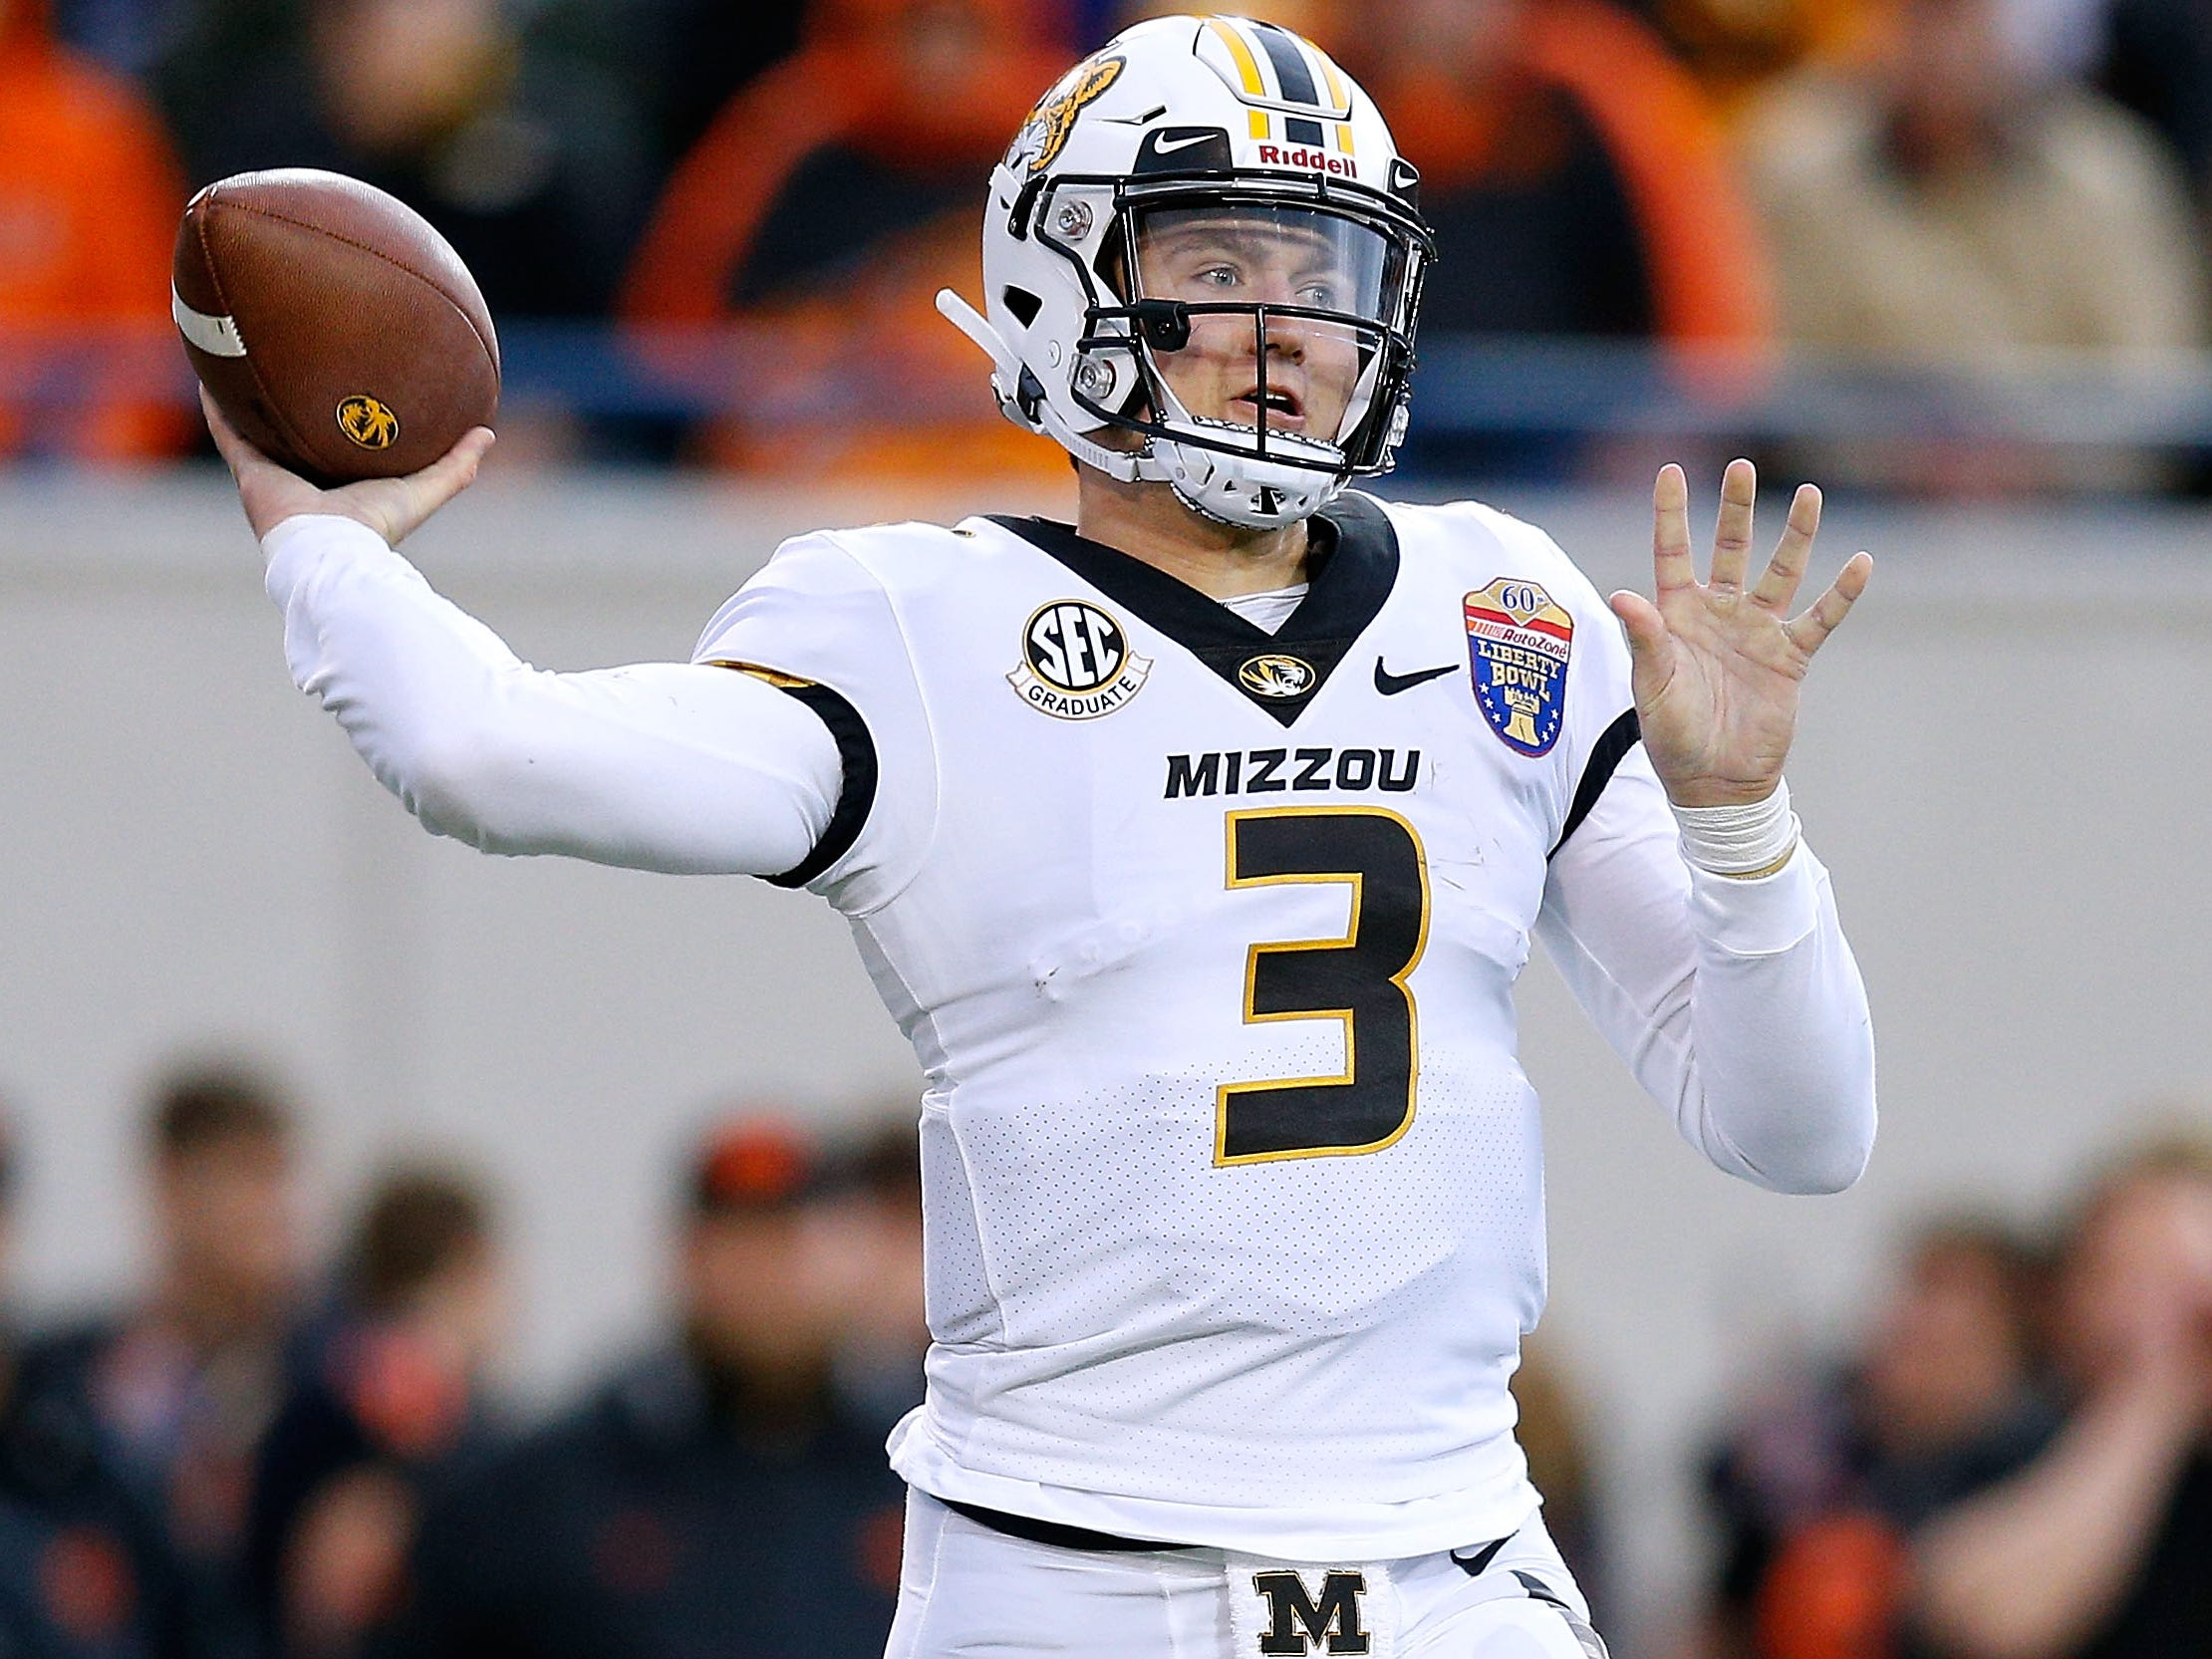 10. Denver Broncos — Drew Lock, QB, Missouri: Case Keenum's two-year contract, signed last offseason, implied he was always a stopgap for John Elway. Lock shined at the Senior Bowl after wrapping up a solid career at Missouri. He completed a personal-best 62.9 percent of his throws in 2018, with 28 touchdowns to eight interceptions.